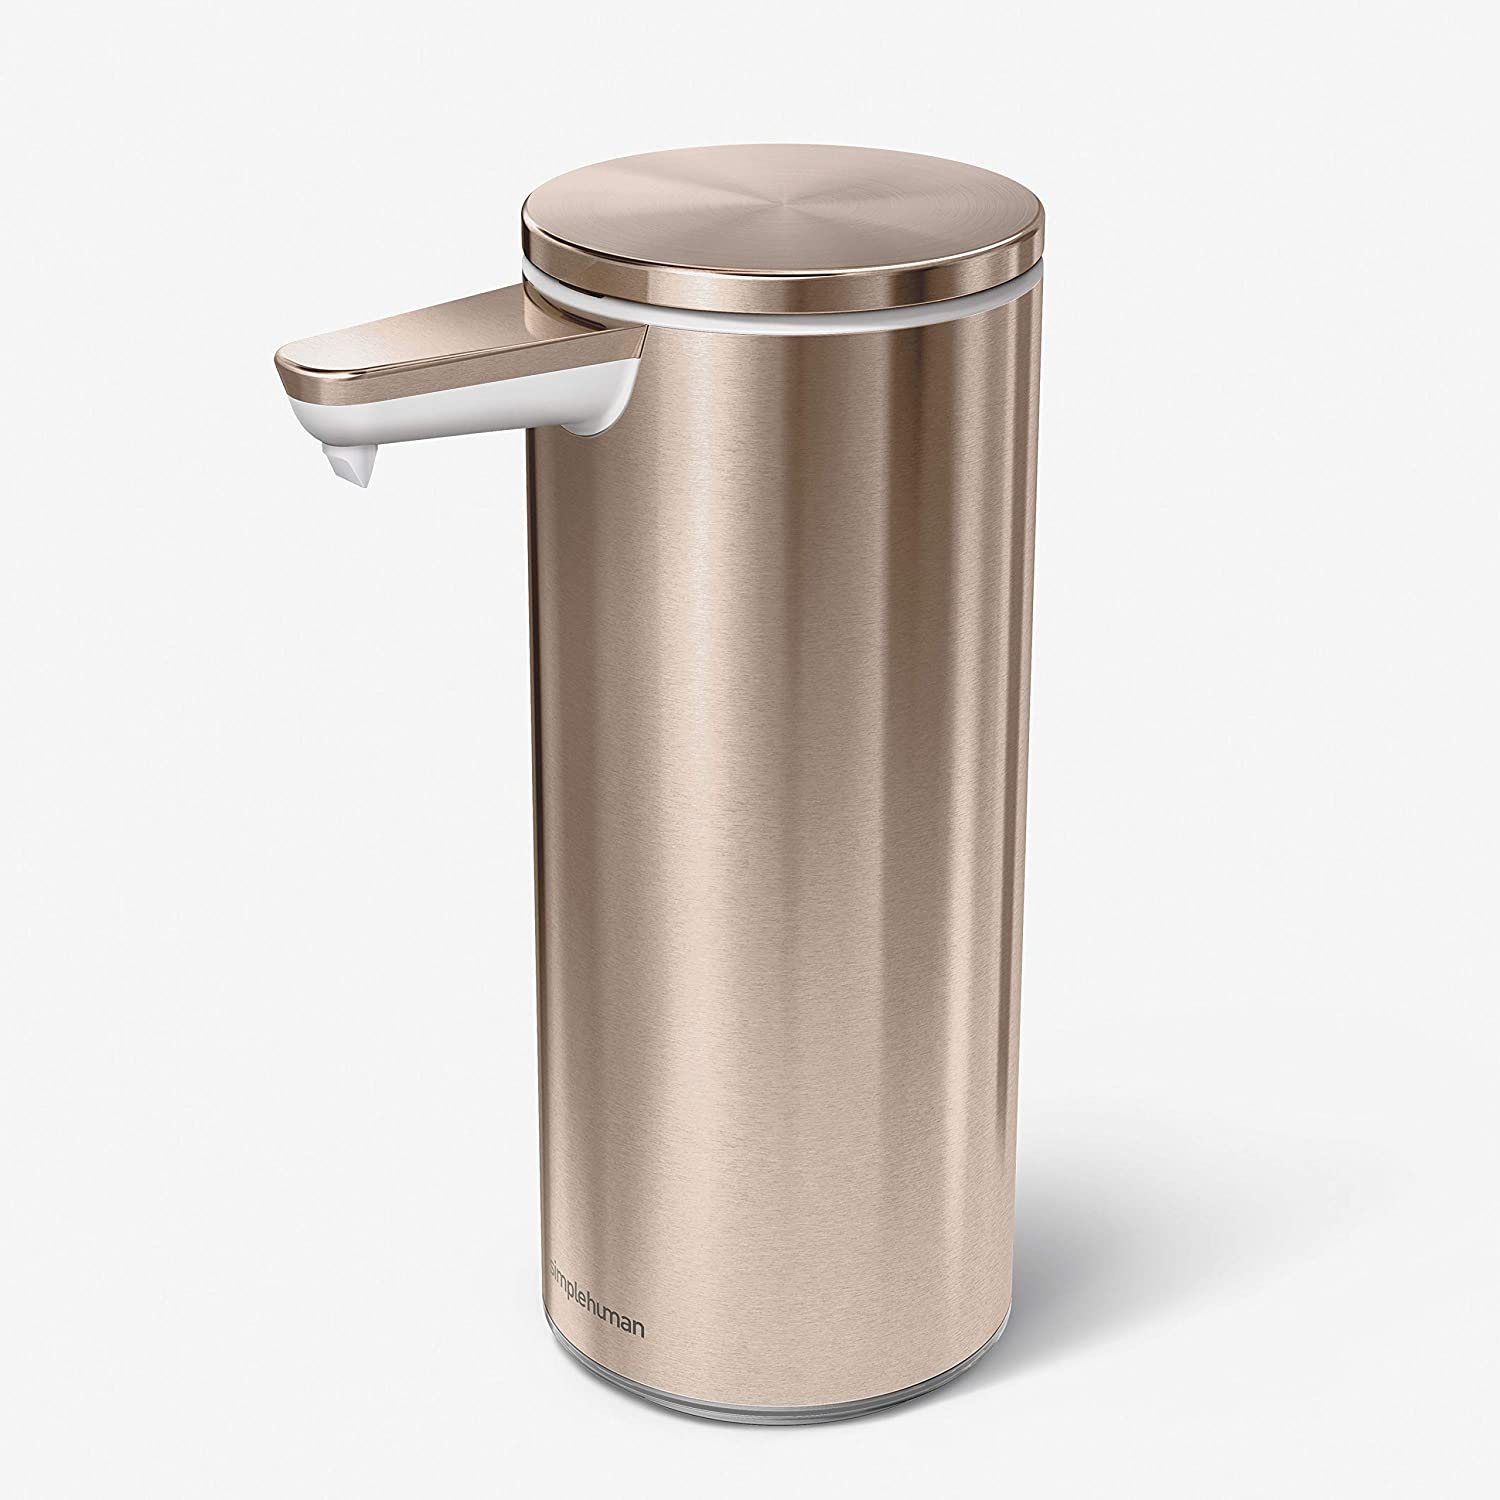 simplehuman ST1046 266ml Automatic Hand Motion Liquid Soap Dispenser, Rechargeable, Variable Dispense, No-drip Valve, IP67 Waterproof, Rose Gold High-Grade Stainless Steel